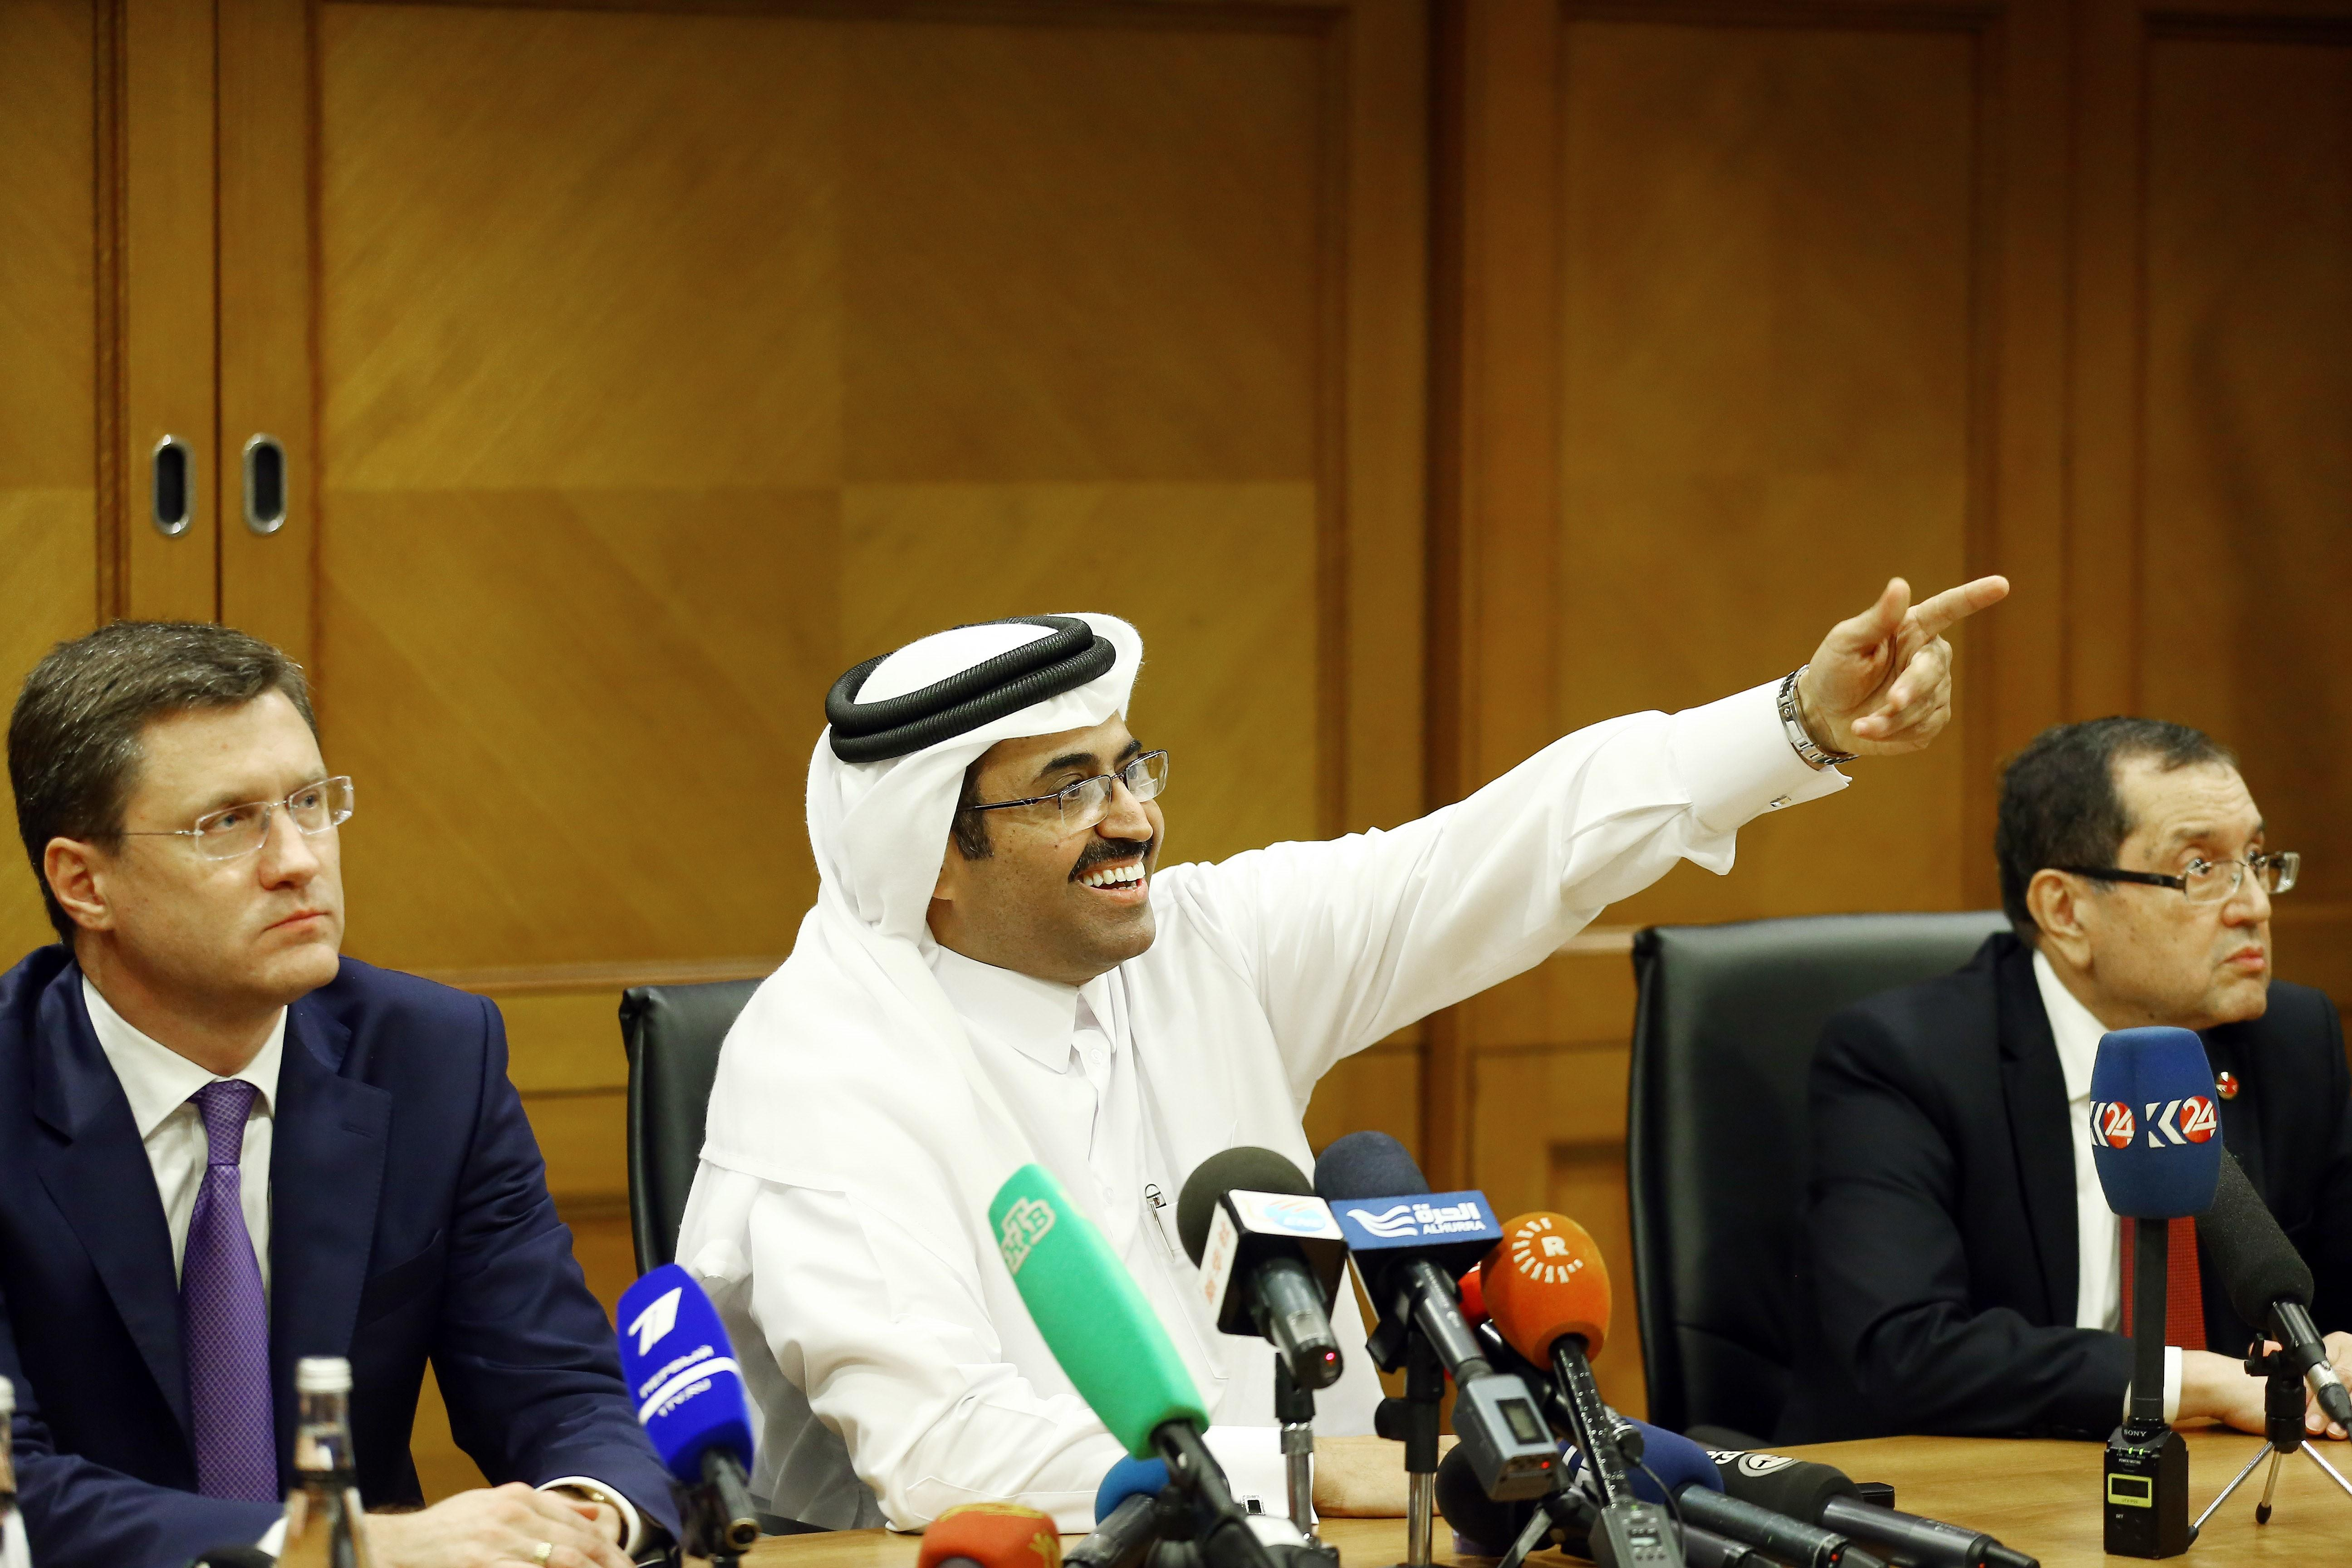 Qatar to withdraw from OPEC, Saudi Arabia dominated oil production